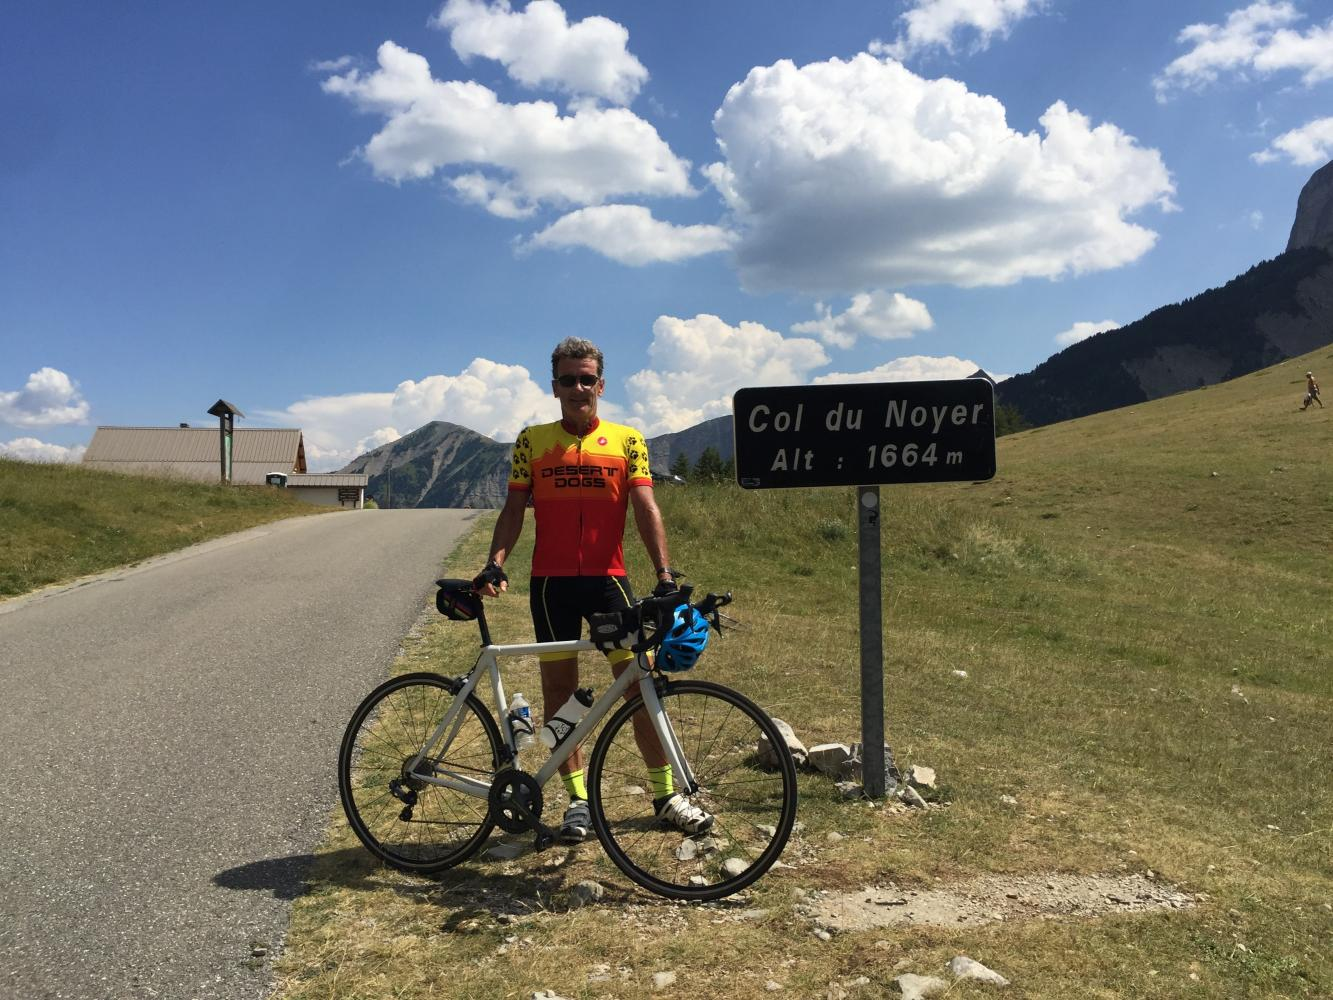 Col du Noyer (St-Disdier) Bike Climb - PJAMM Cycling